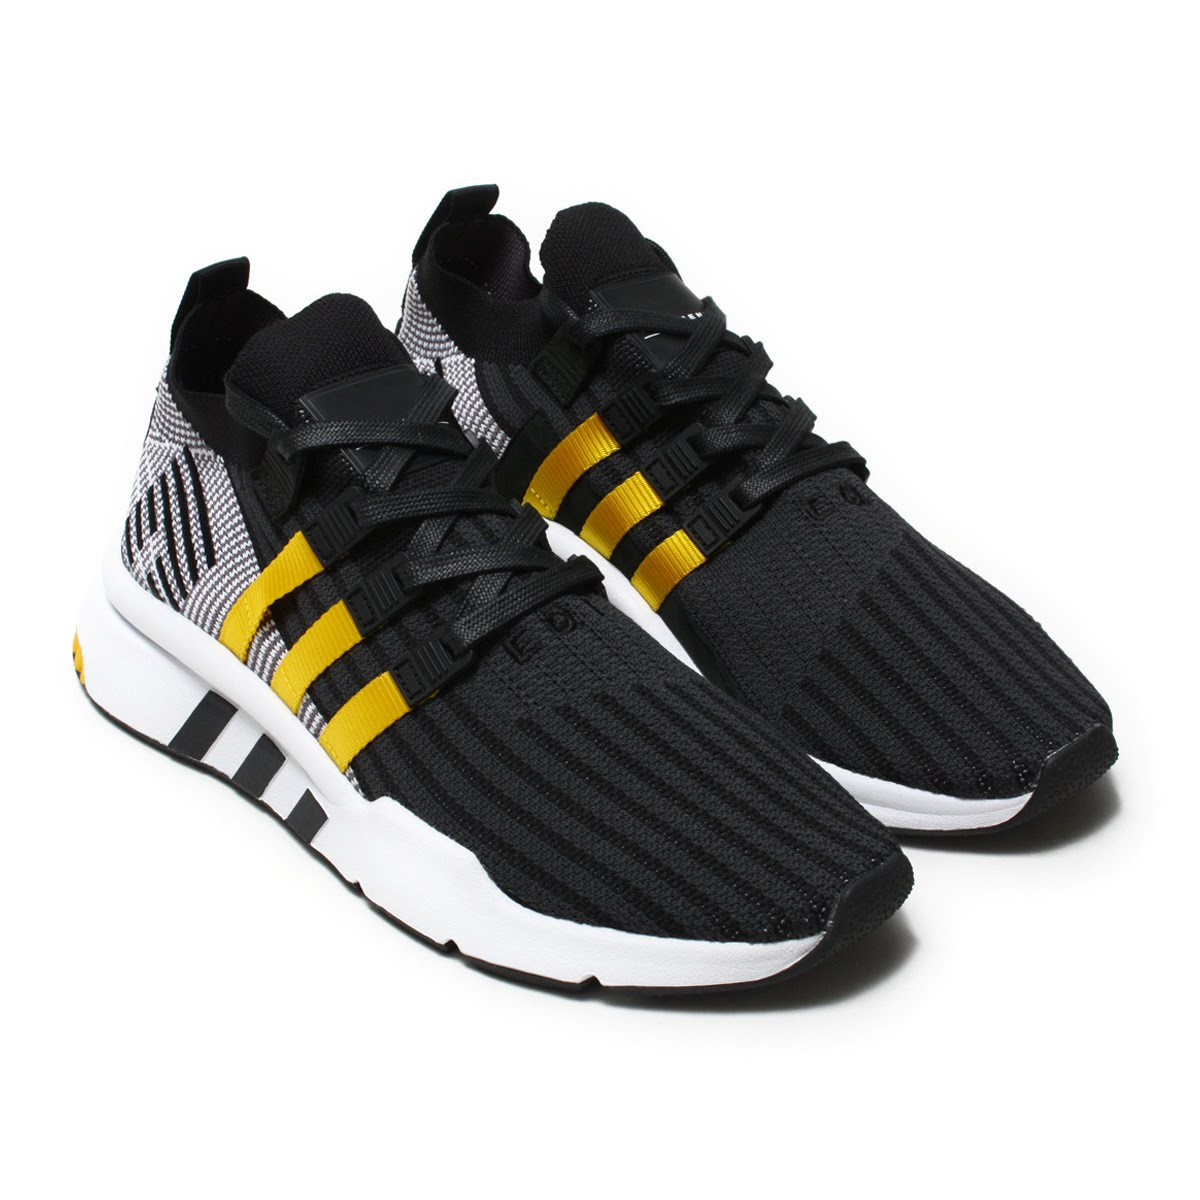 innovative design 9bd01 c5e5b adidas Originals EQT SUPPORT MID ADV PK (Adidas originals E cue tea support  mid ADV PK) Core Black/Eqt Yellow/Running White 18SS-I